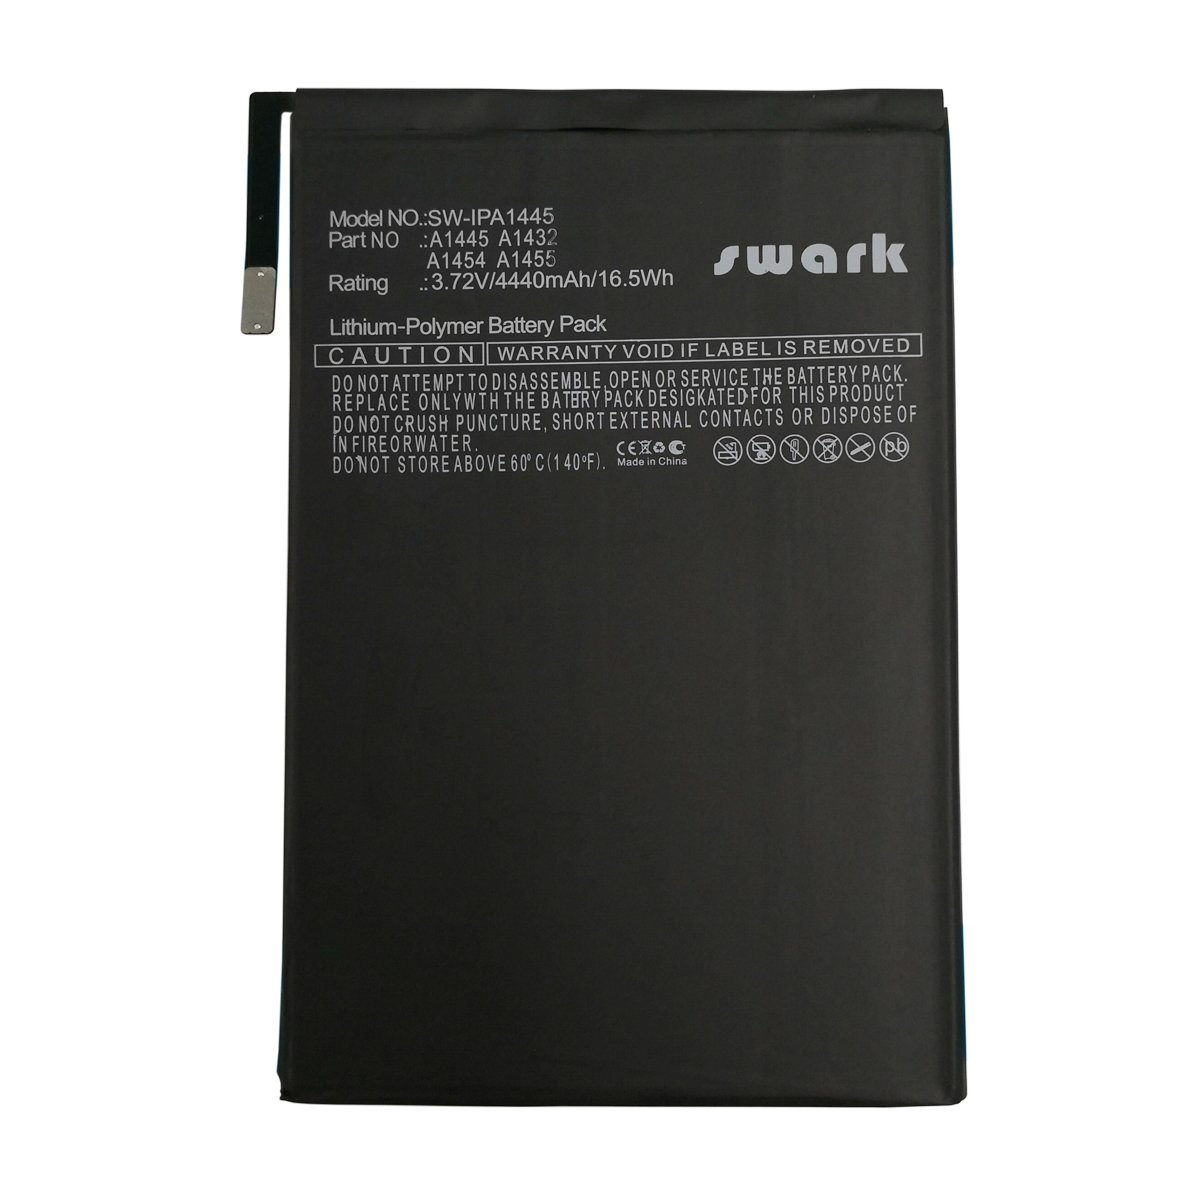 Swark Replacement A1445 Battery Compatible with Apple iPad Mini A1432 A1445 A1454 616-0627 616-0633 616-0688